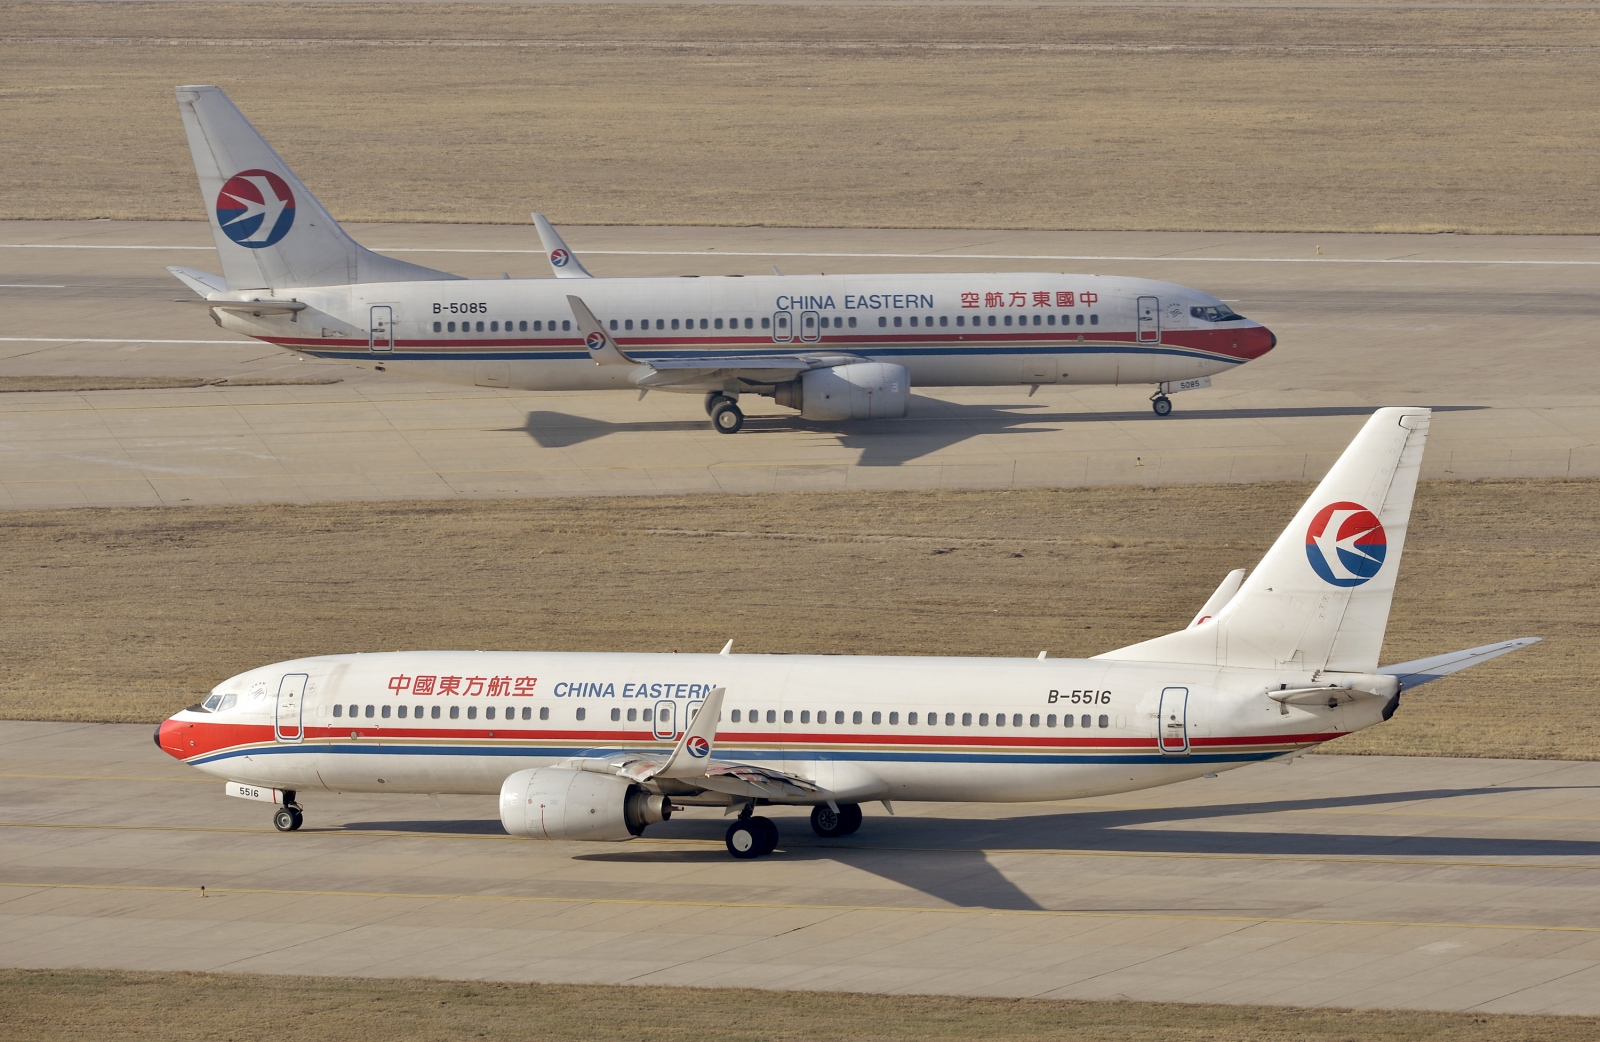 China Eastern Airlines Boeing 737-800 planes are seen at an airport in Taiyuan, Shanxi province